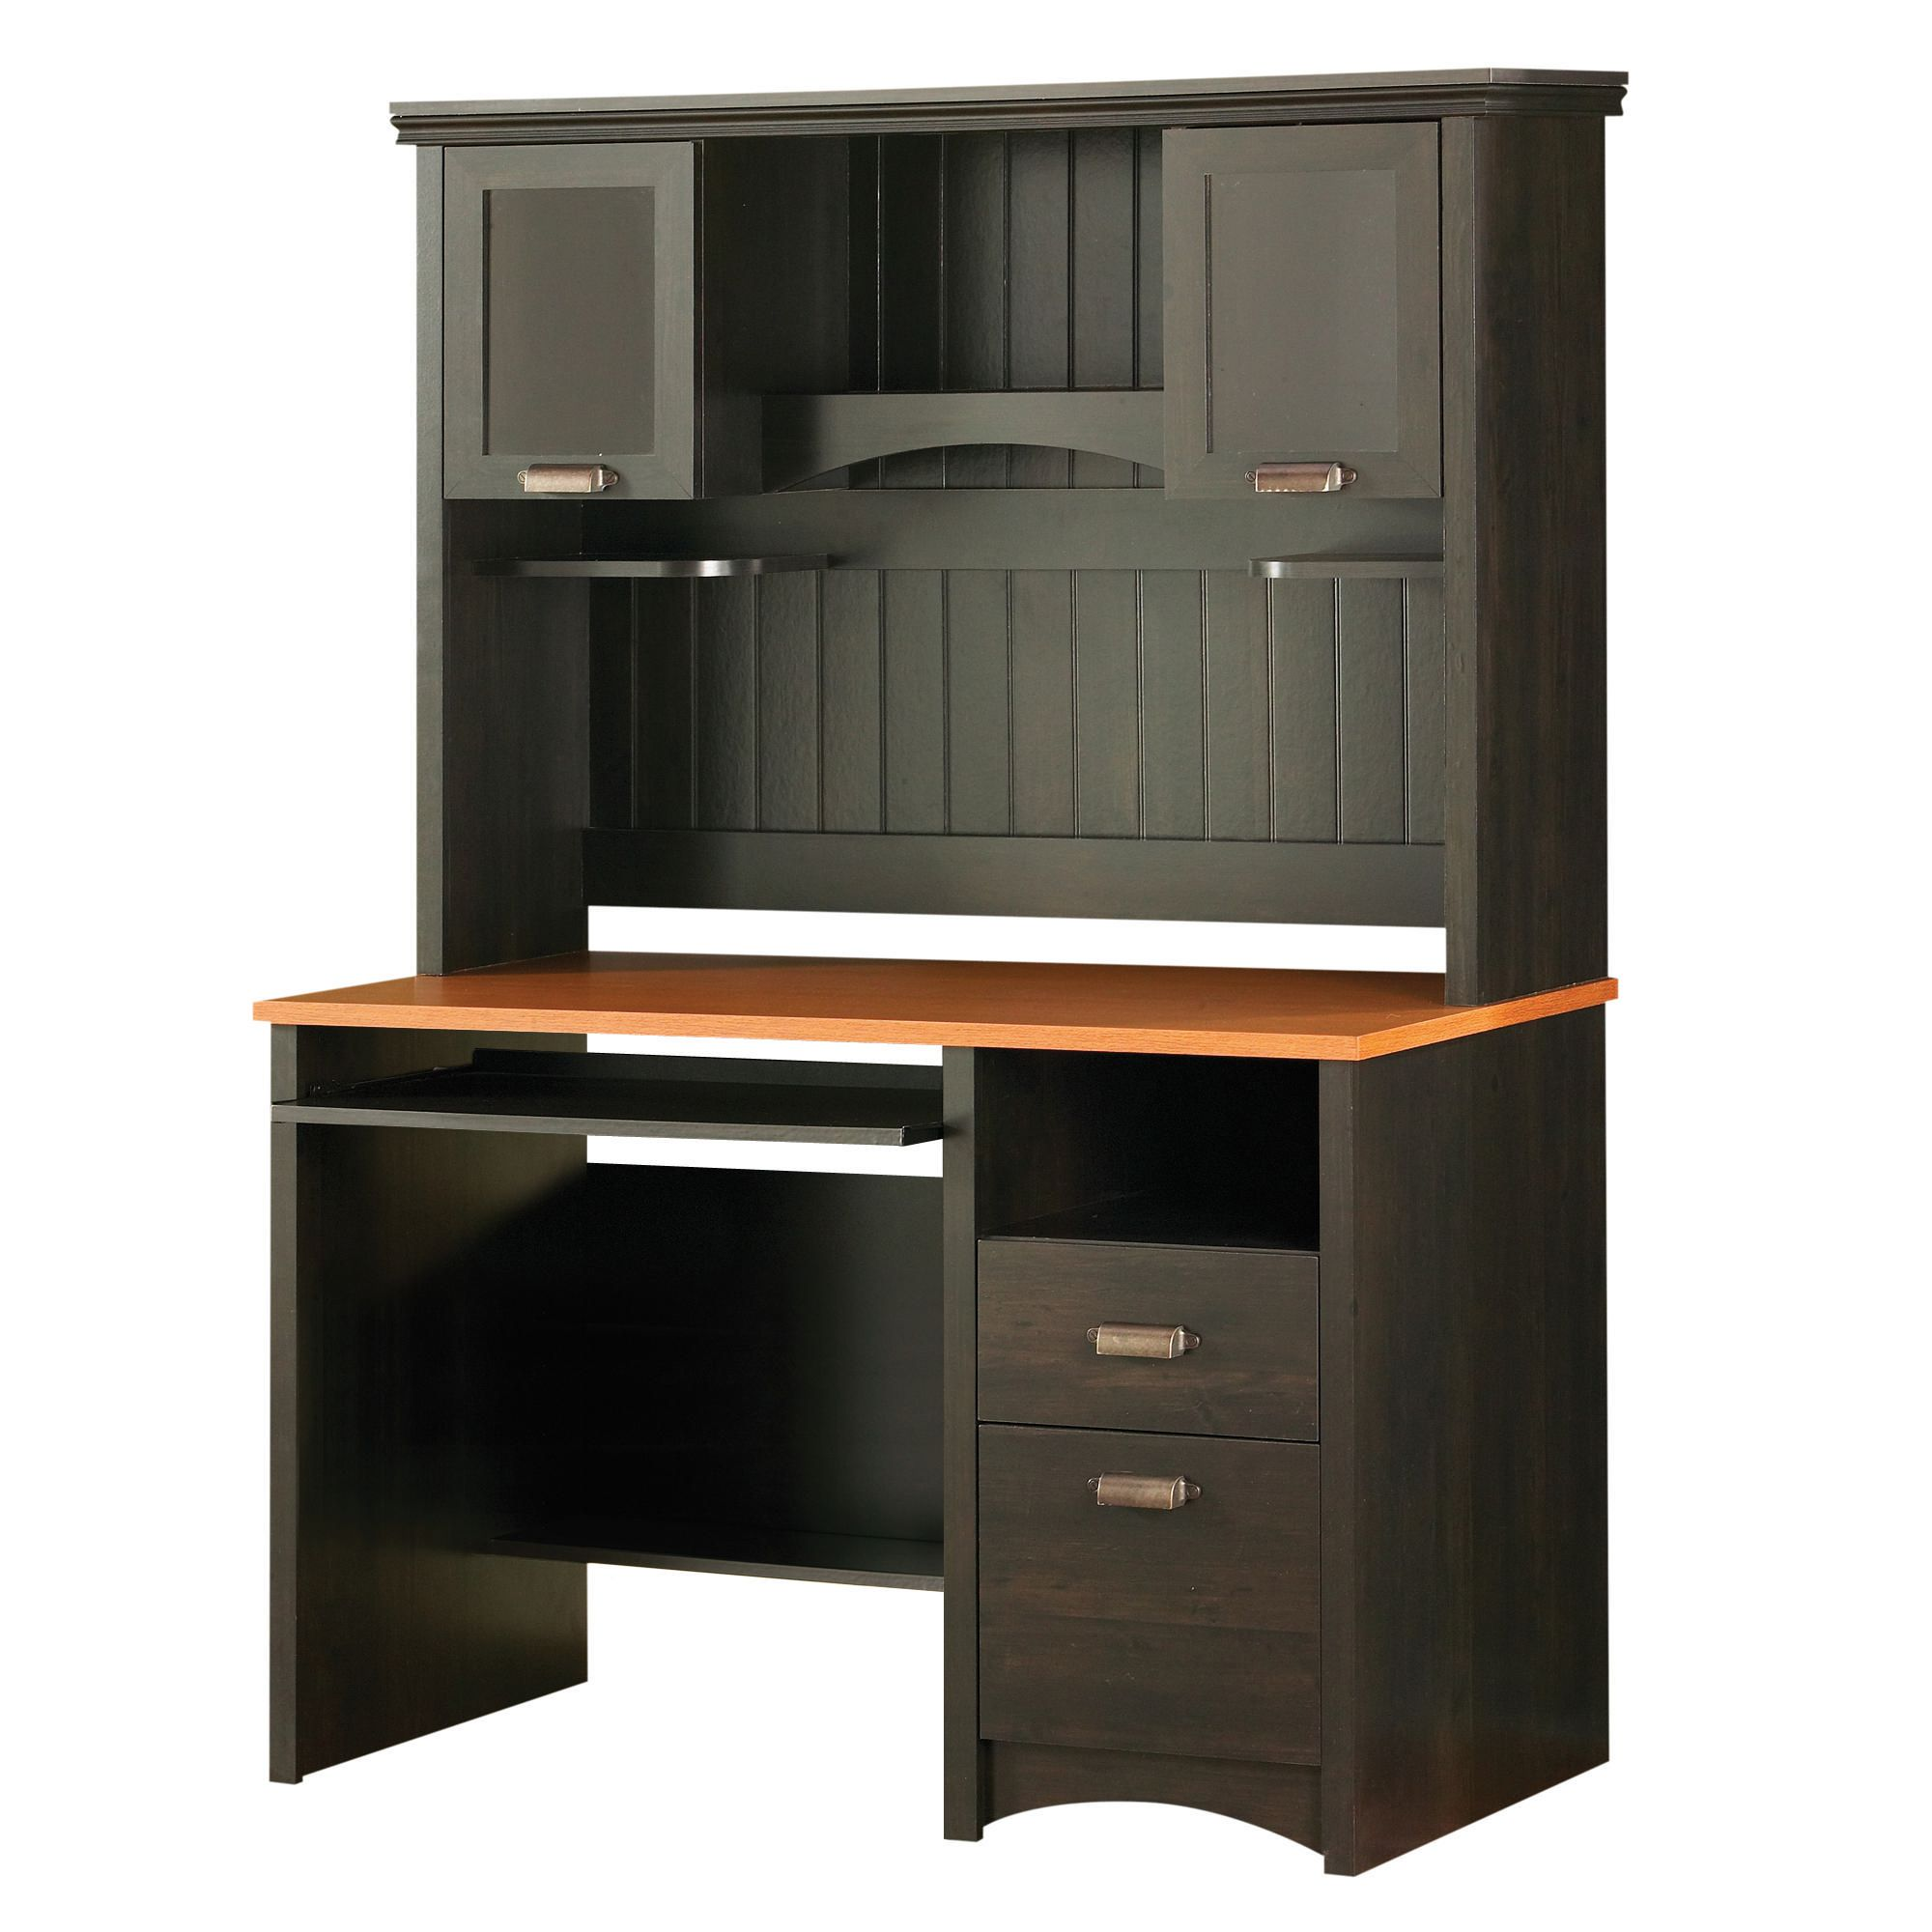 desk hutches an home hutch and for office furniture designs ikea with eye traditional ideas